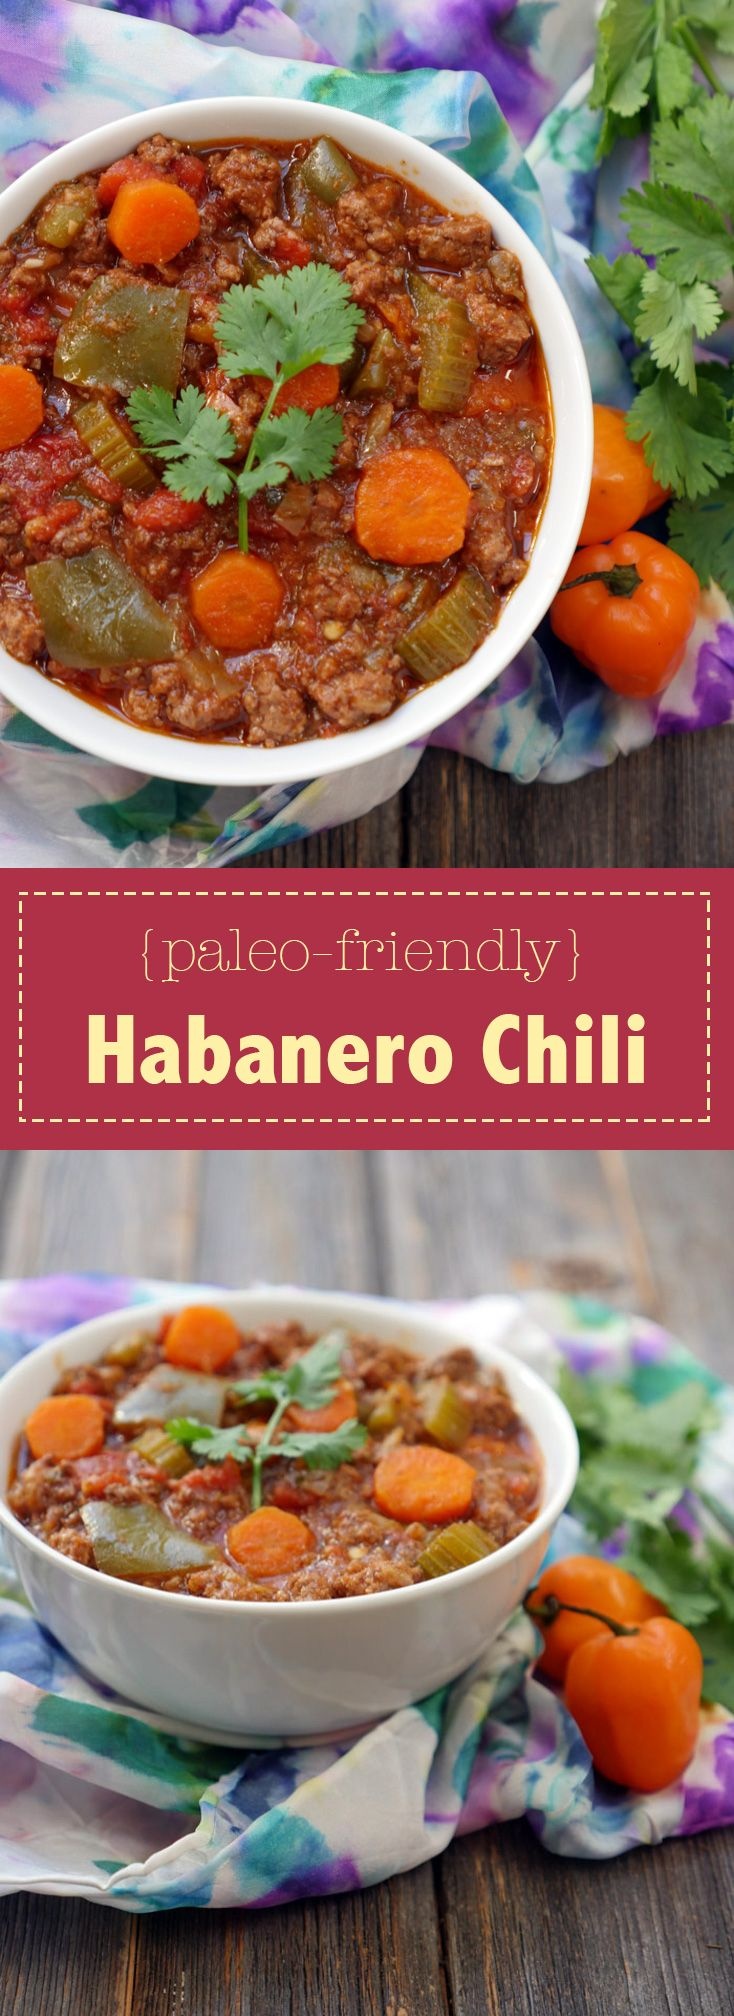 This Habanero Chili is a spicy and hearty chili made using a slow cooker. Recipe by Ashley of MyHeartBeets.com